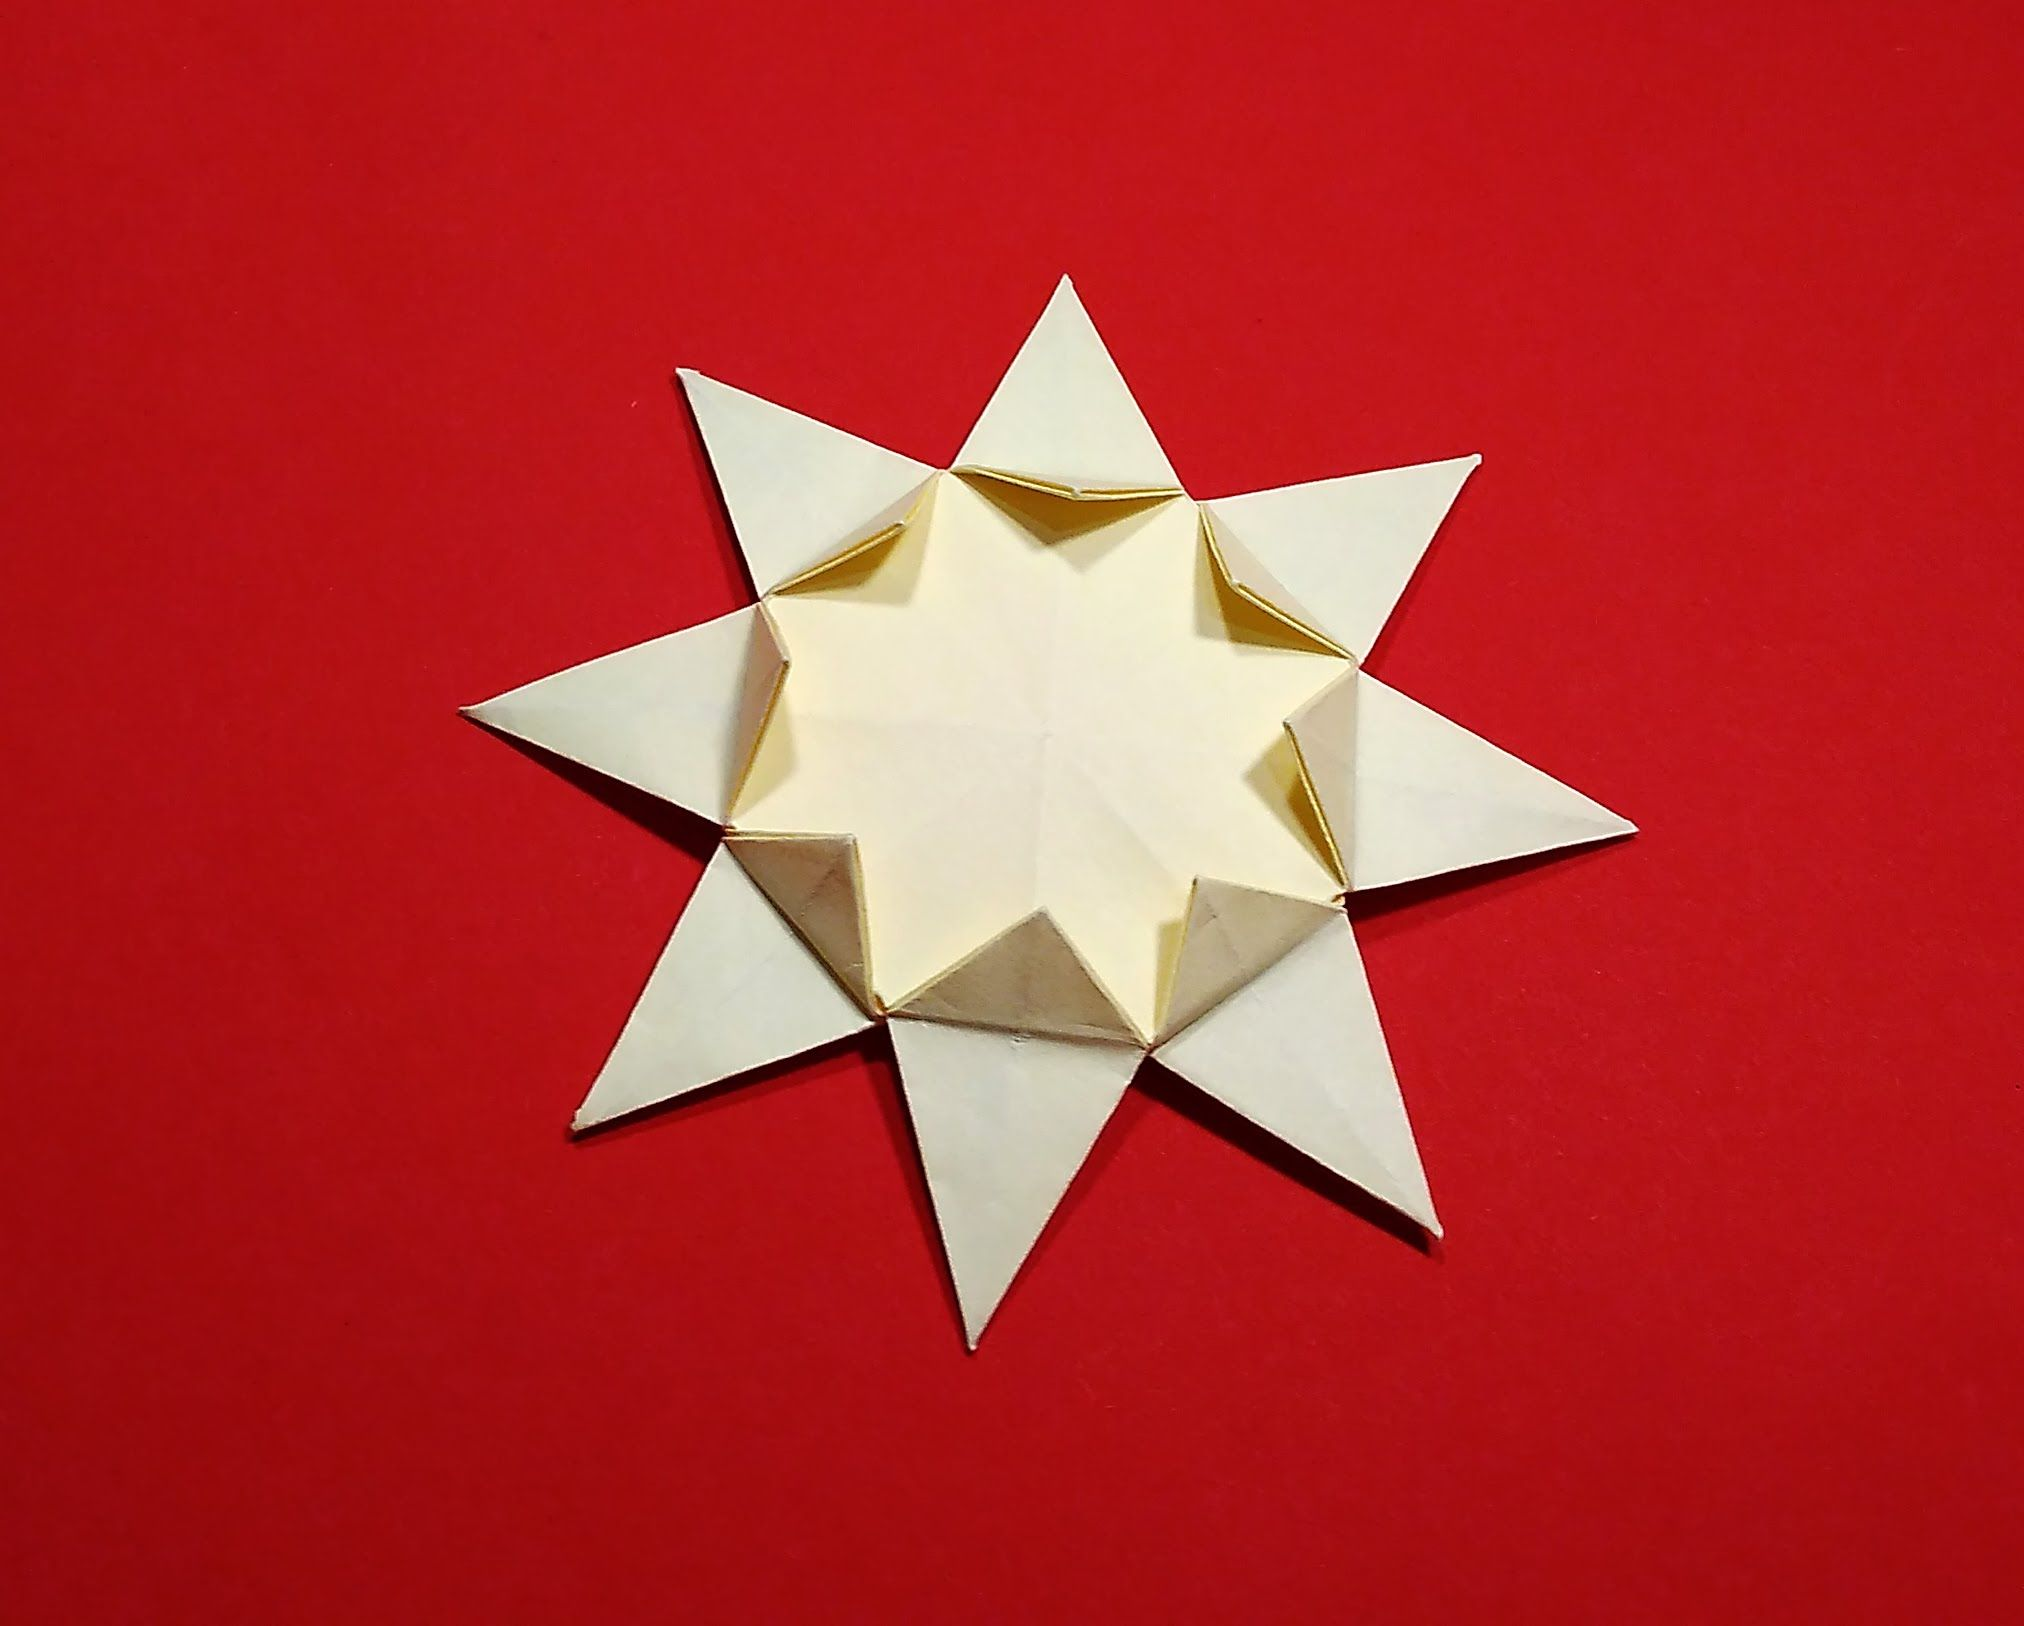 Easy Origami Sun 8 Pointed Origami Star Ideas For Christmas And